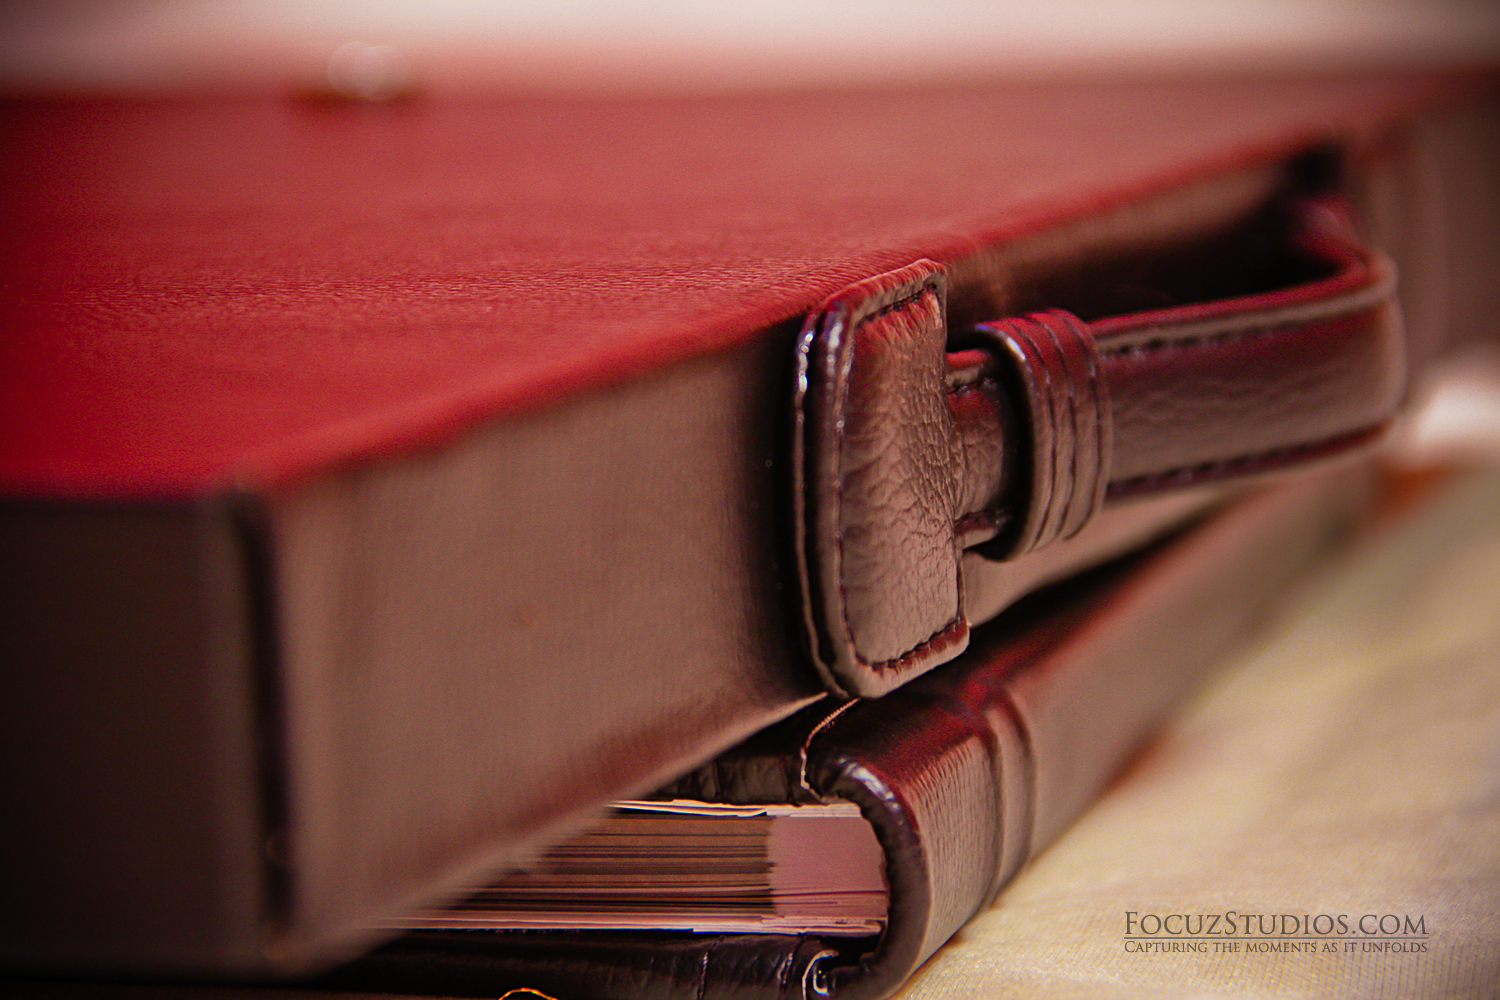 Canvera Eco-Leather Photo Book